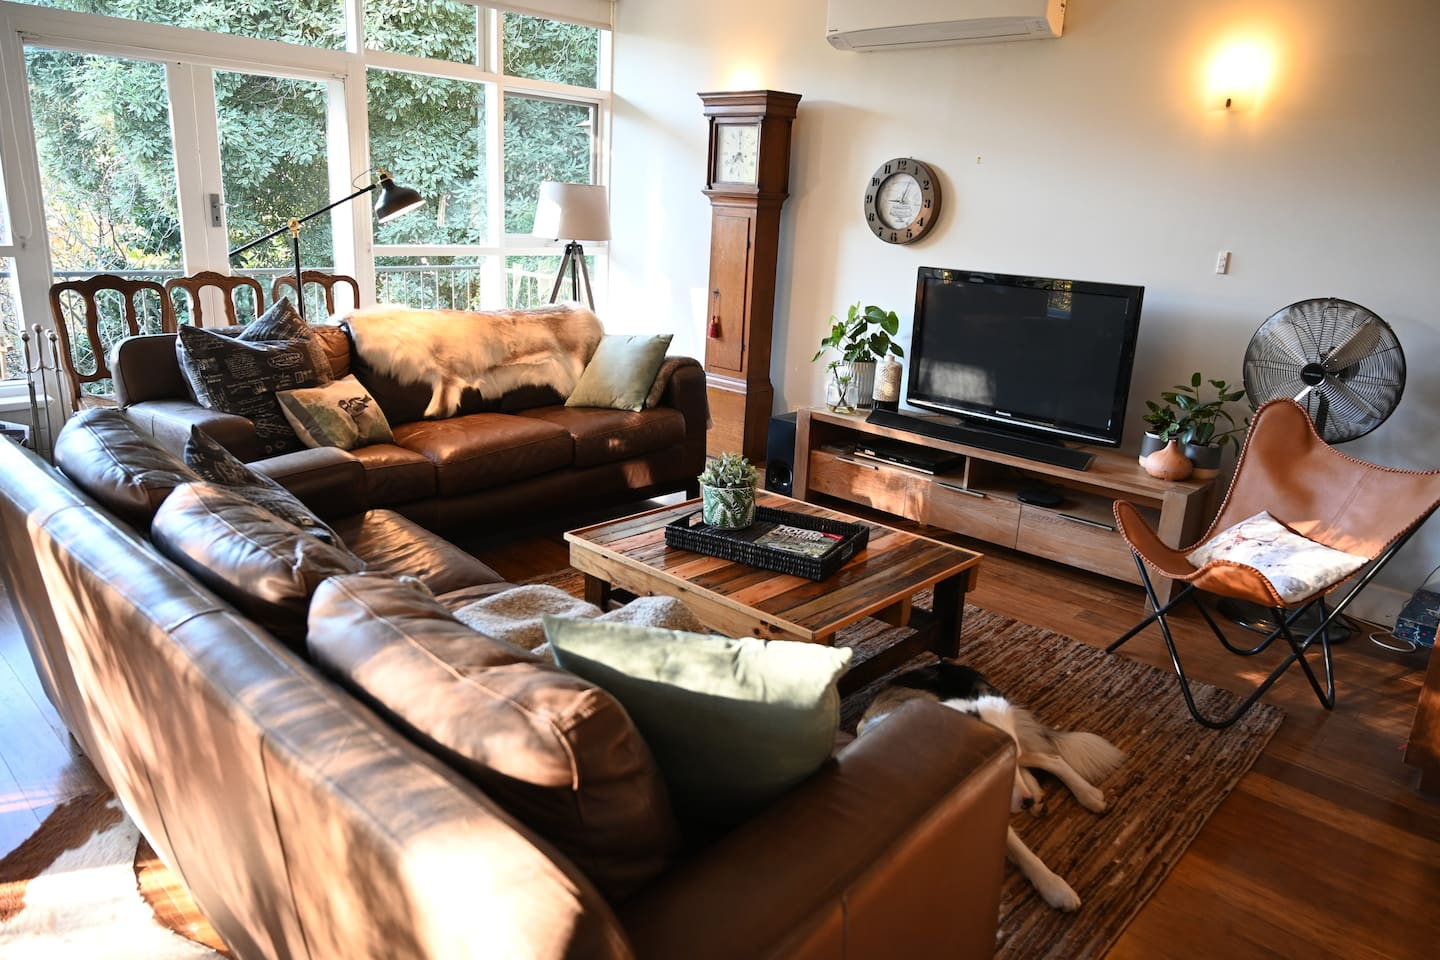 The cosy living room has deep comfy leather sofas to watch the TV/Telstra box/DVDs from